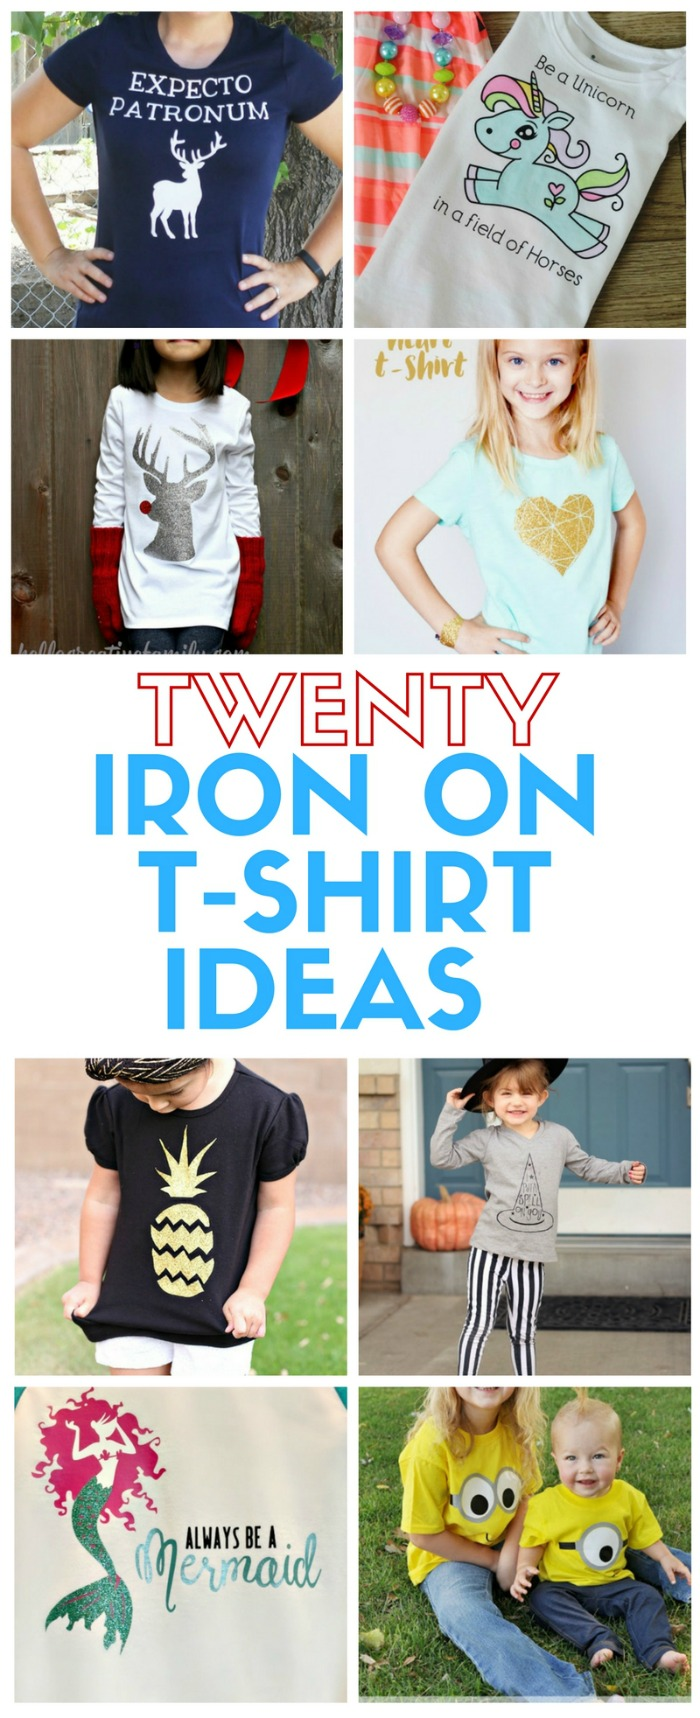 Twenty Iron On T-Shirt Ideas